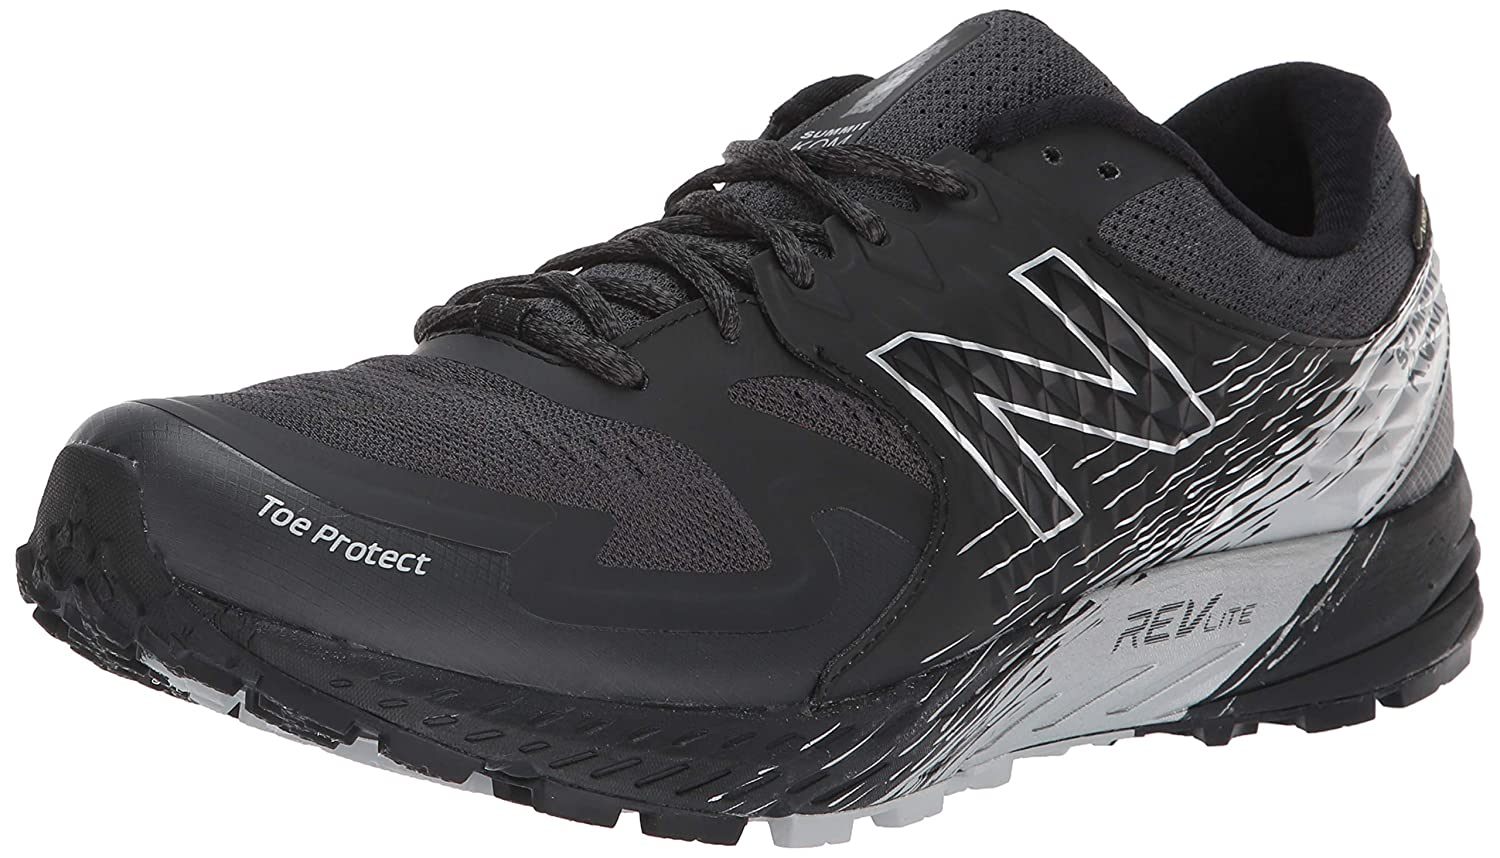 New Balance Herren Summit KOM Gore-tex Traillaufschuhe